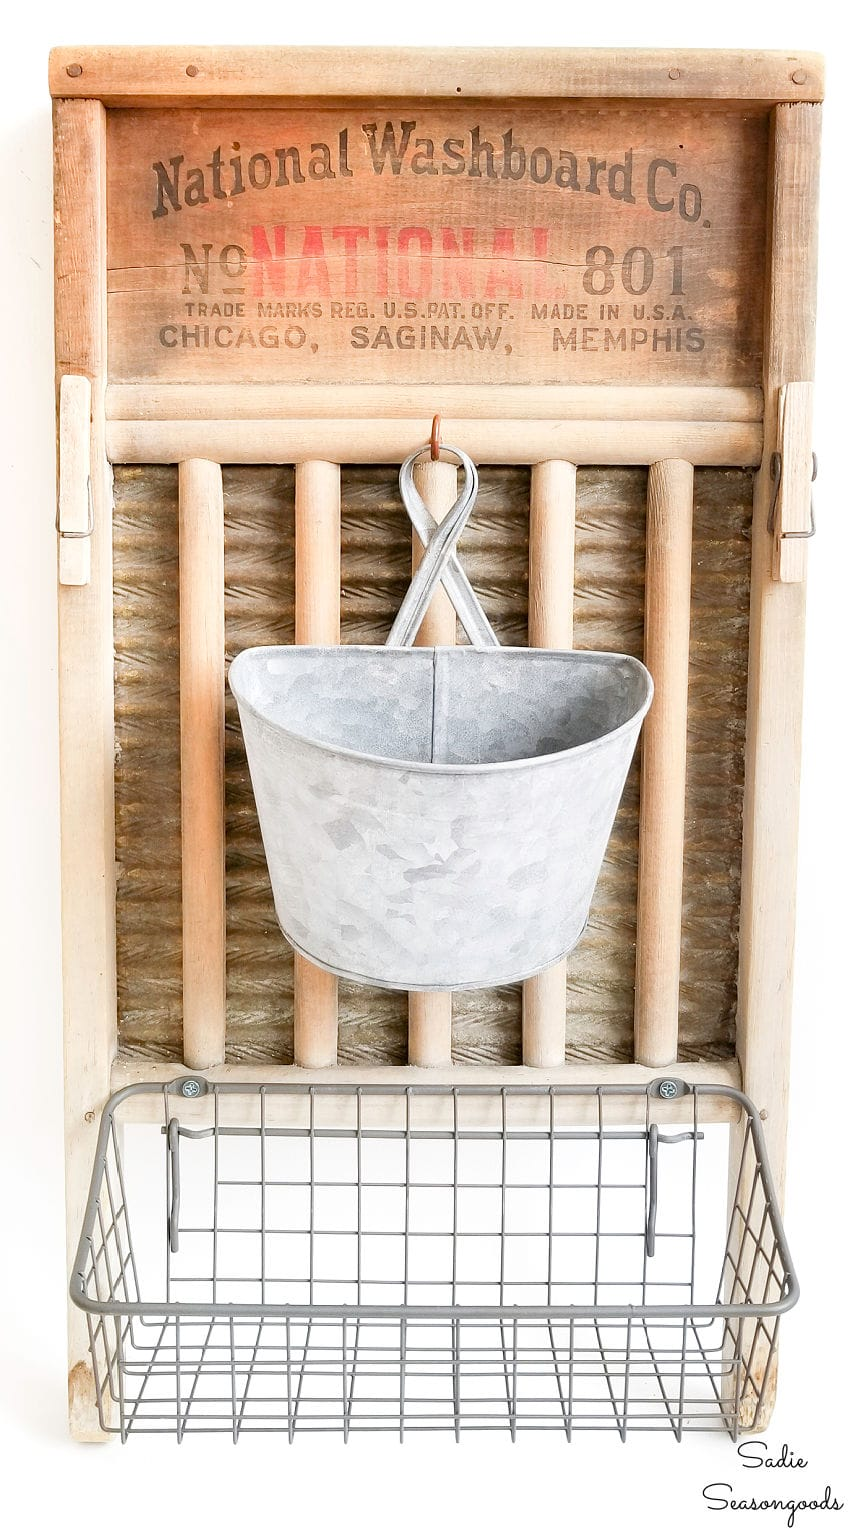 Laundry room wall decor with a washboard